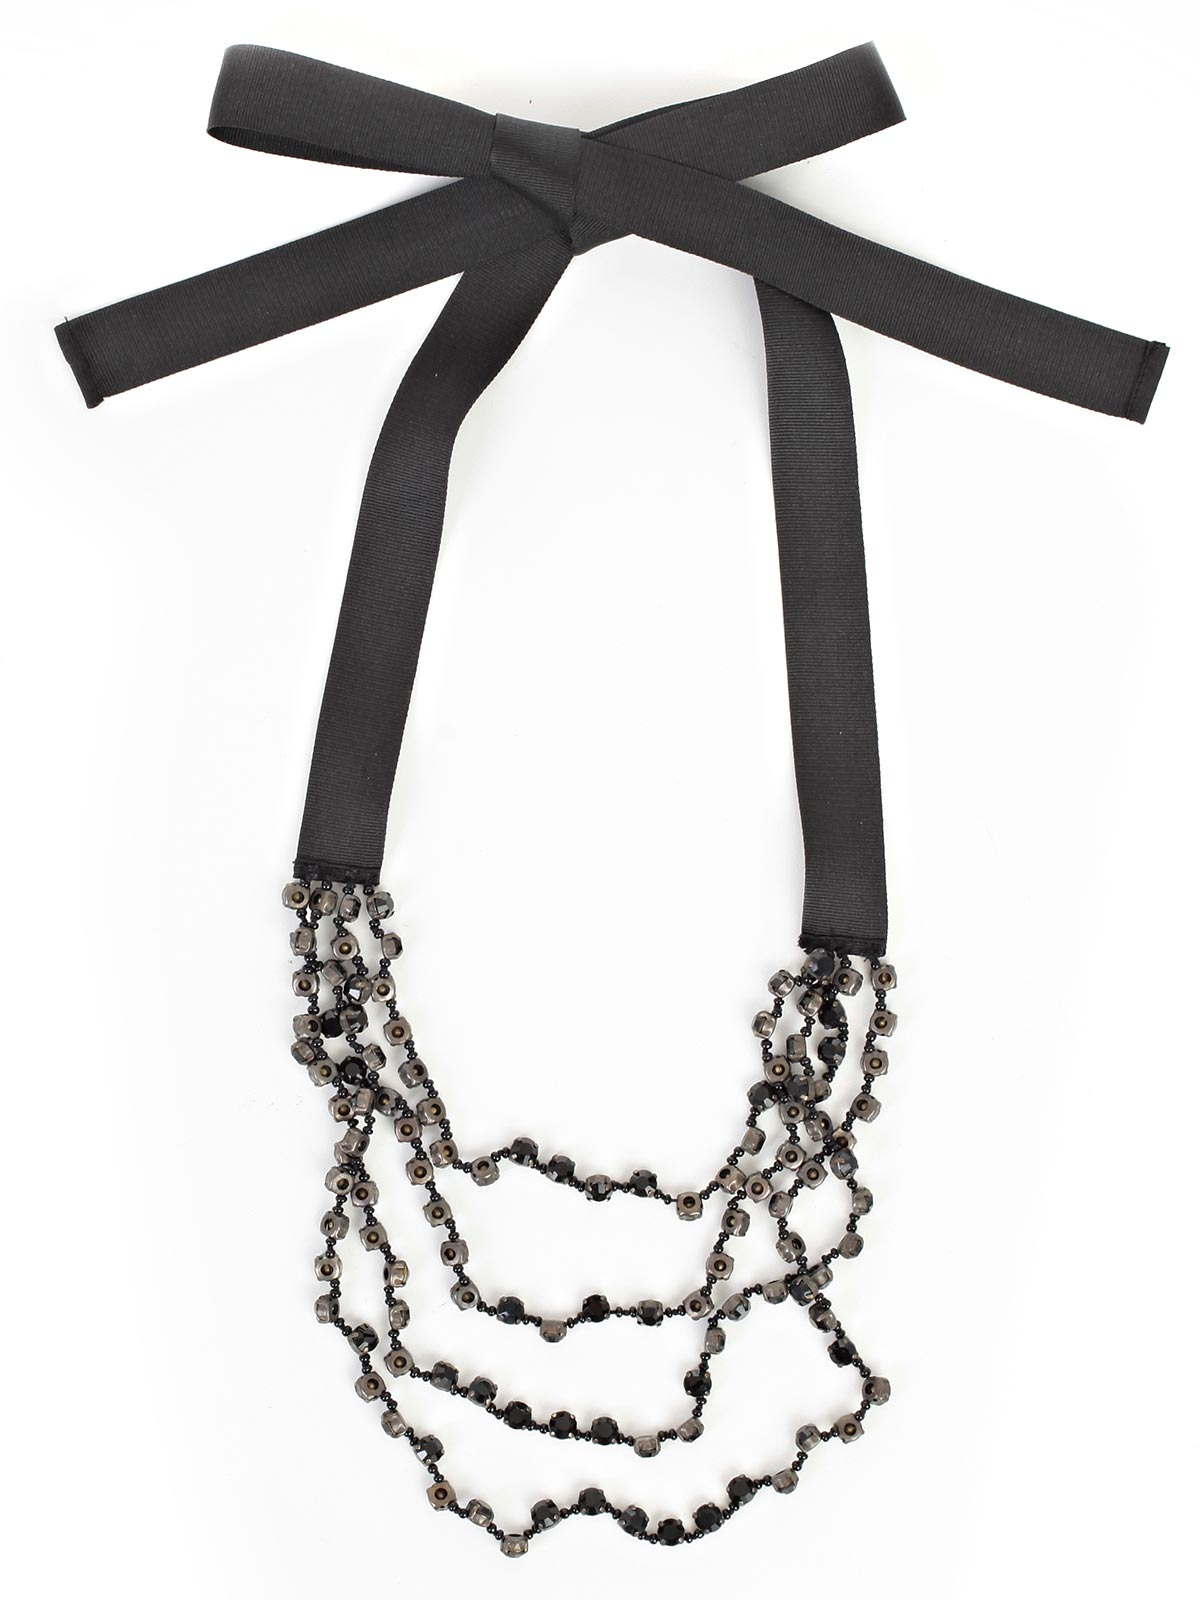 Picture of ANN DEMEULEMESTER NECKLACE COLLANA PIETRE